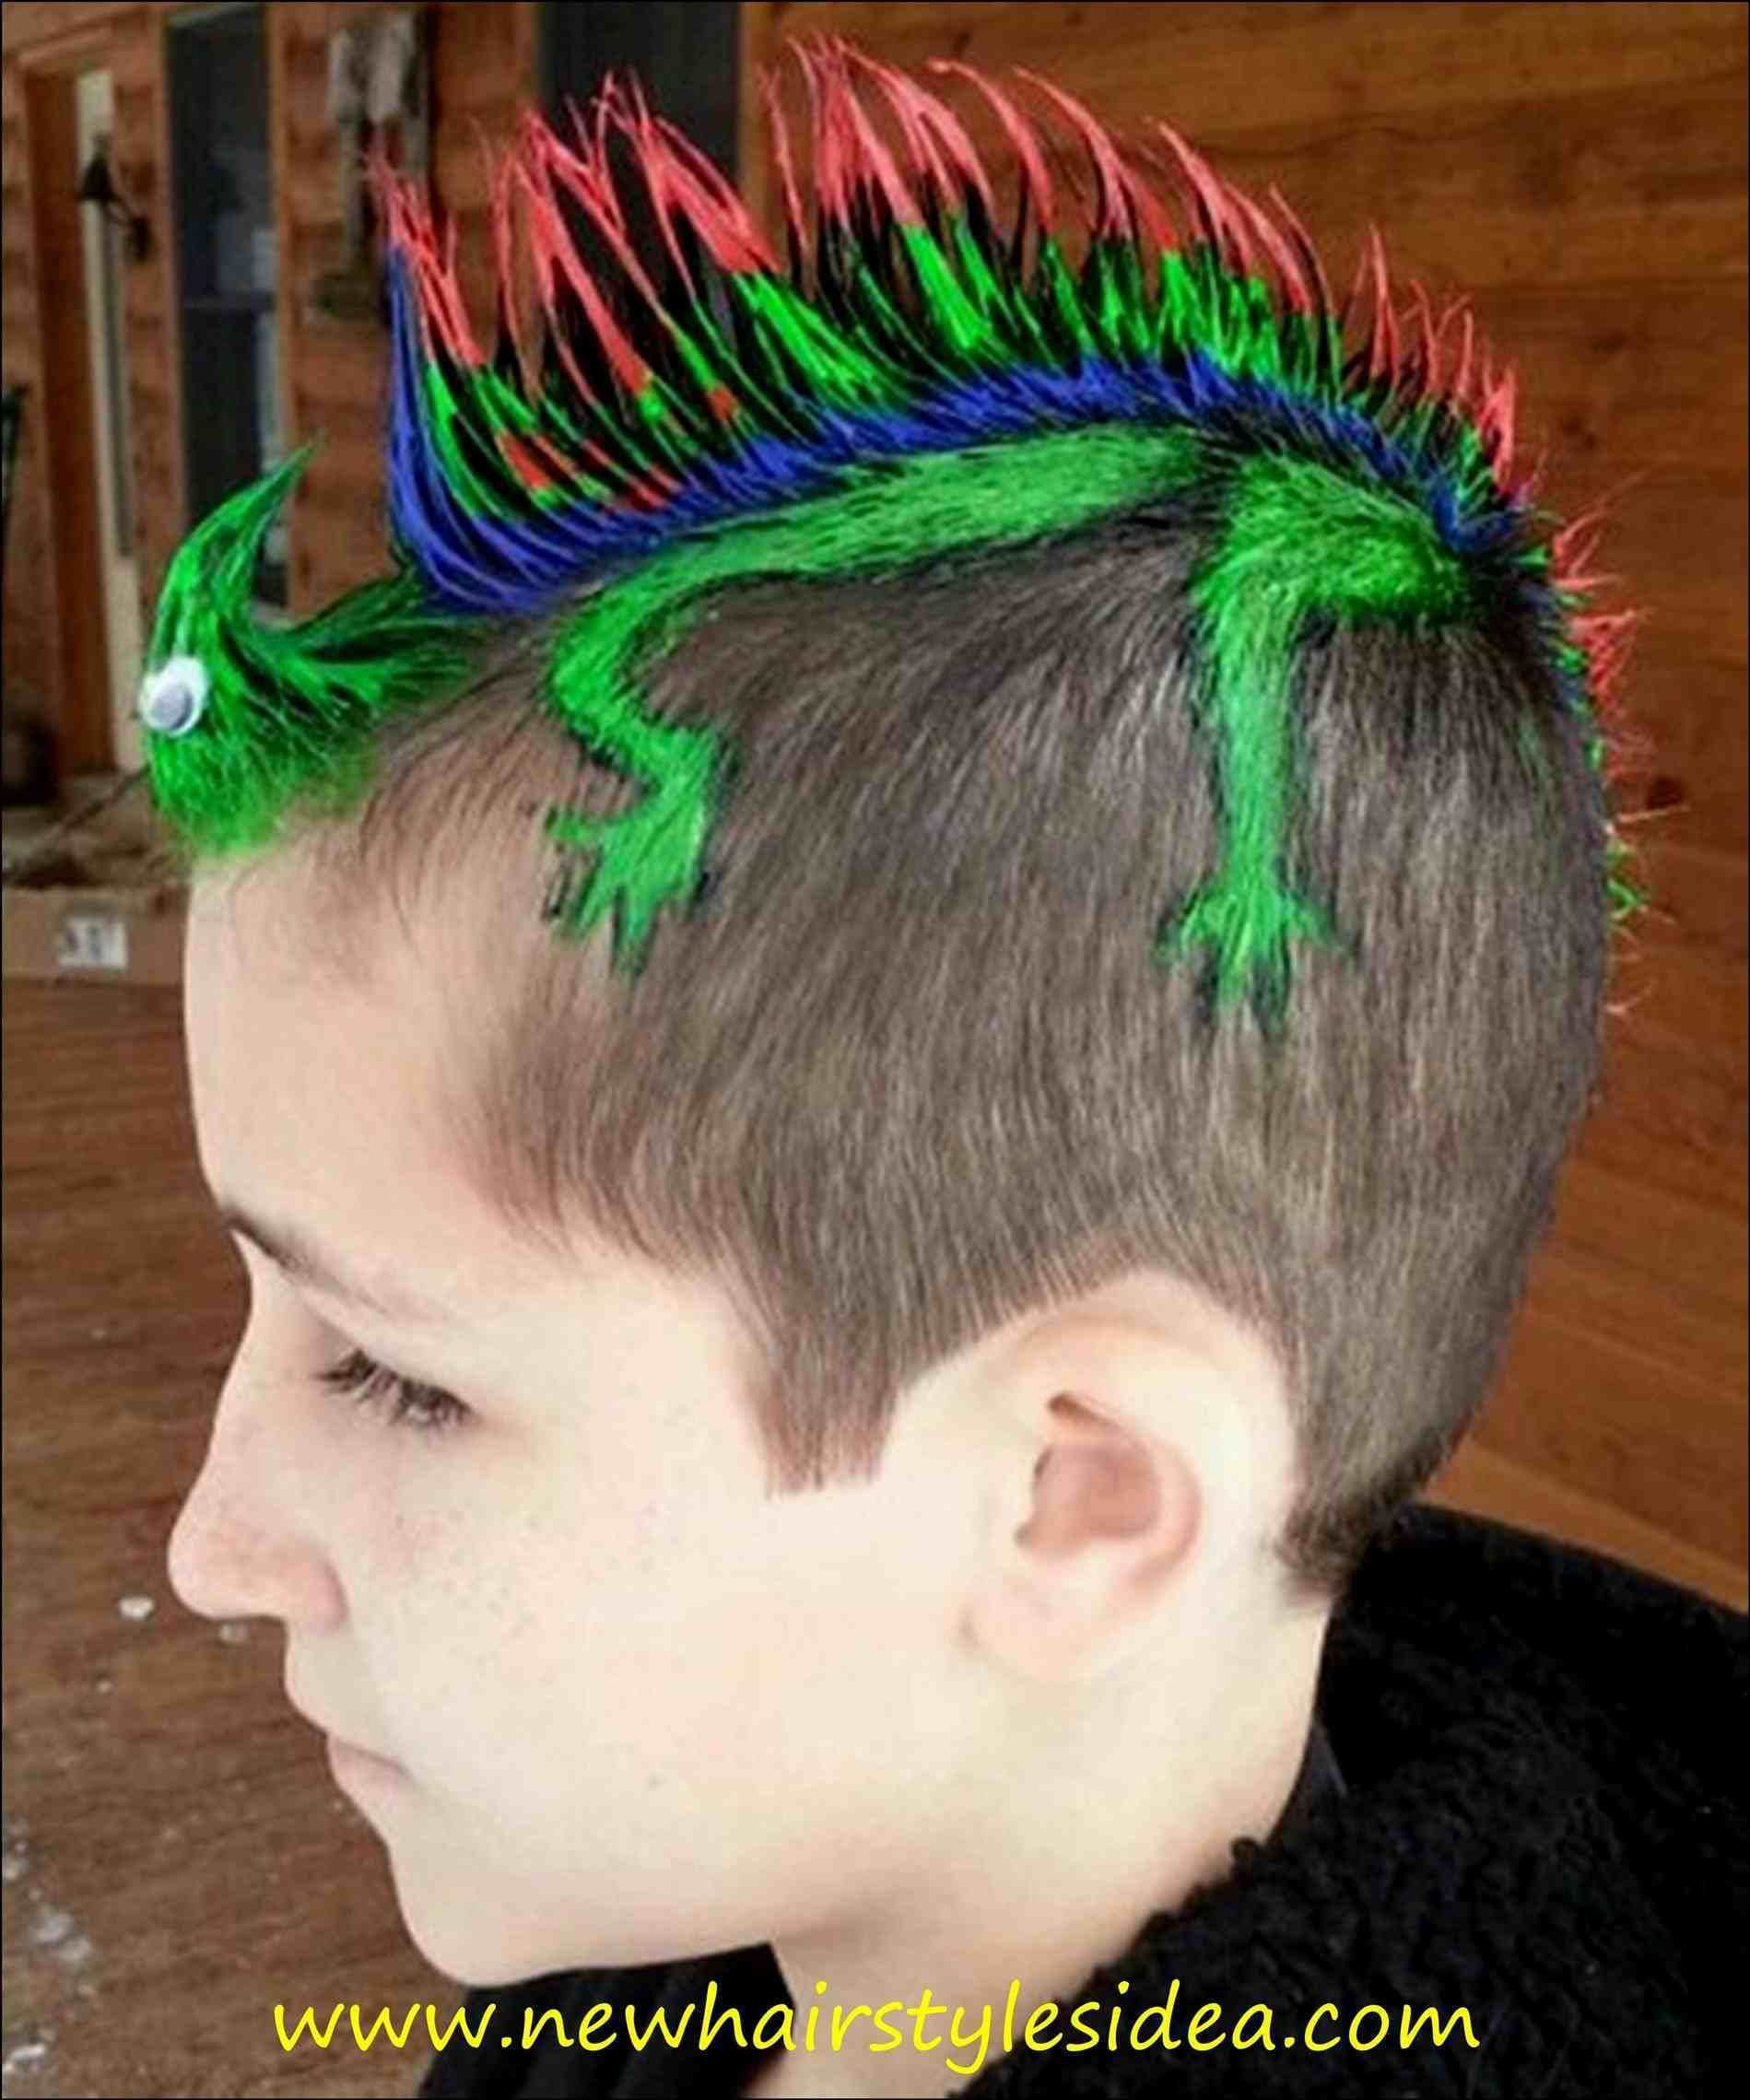 Haircuts And More Fresh Kids Haircut 1 On The Sides Slickback On Top